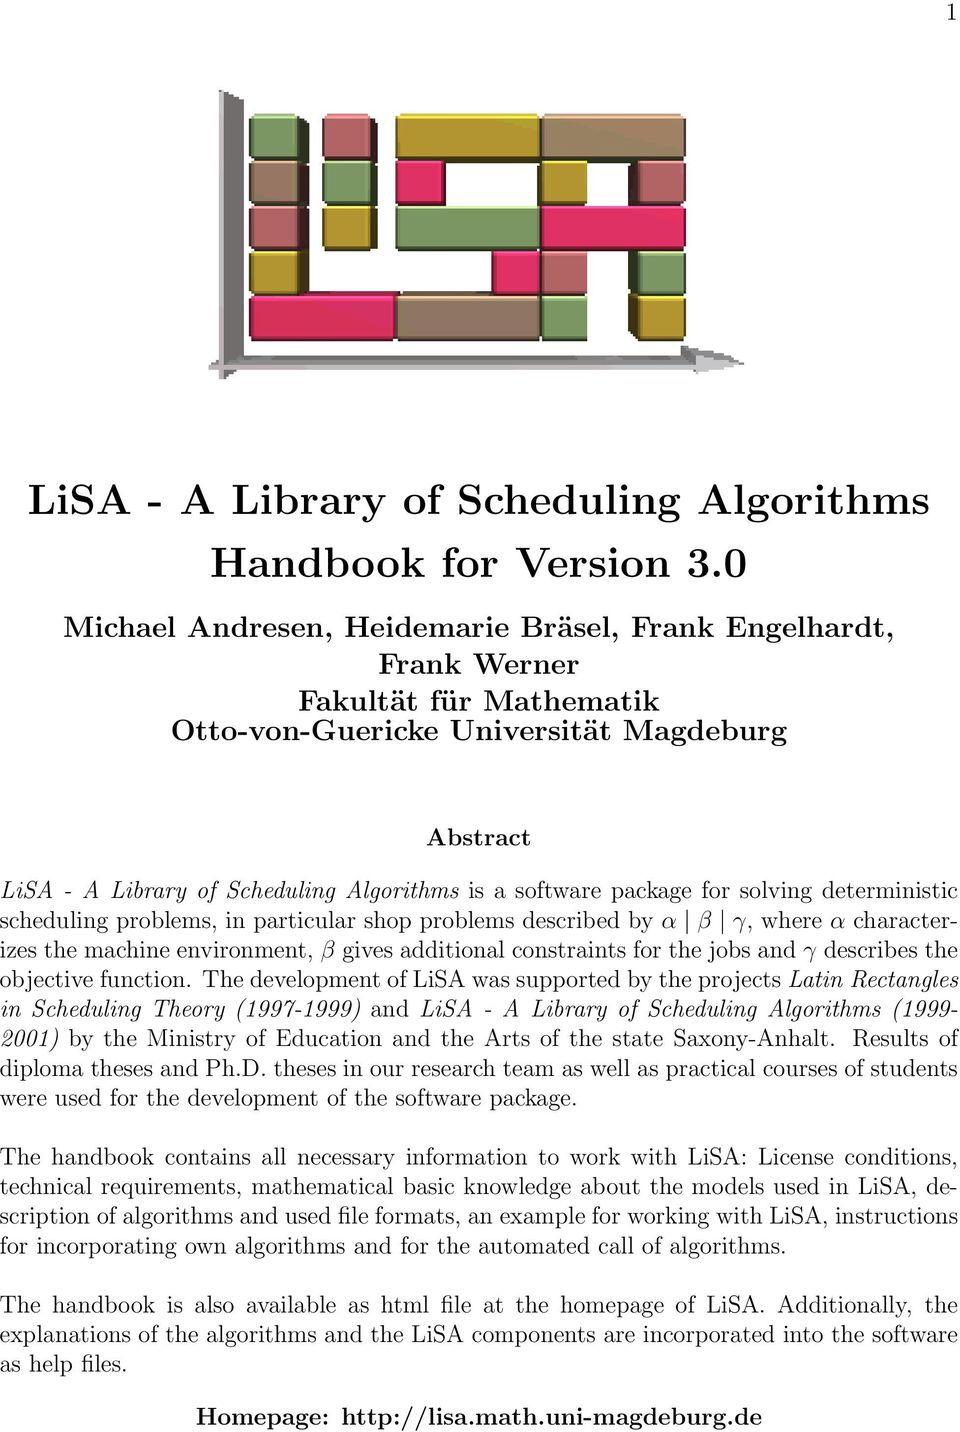 package for solving deterministic scheduling problems, in particular shop problems described by α β γ, where α characterizes the machine environment, β gives additional constraints for the jobs and γ